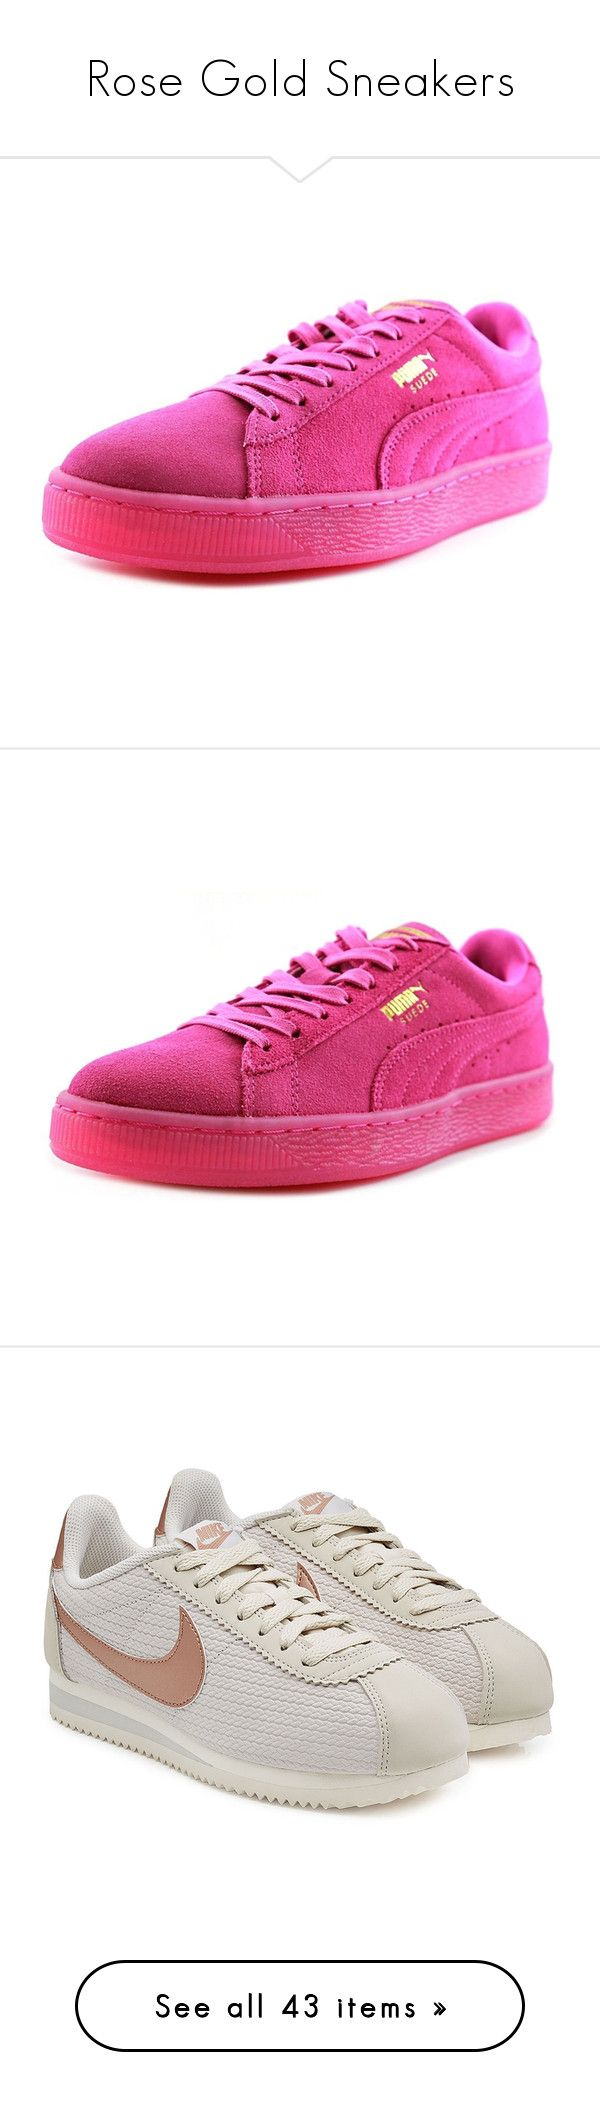 """""""Rose Gold Sneakers"""" by azurahanumabdullahsani ❤ liked on Polyvore featuring shoes, sneakers, pink, puma footwear, pink low heel shoes, pink suede shoes, grip shoes, puma trainers, suede sneakers and short heel shoes"""